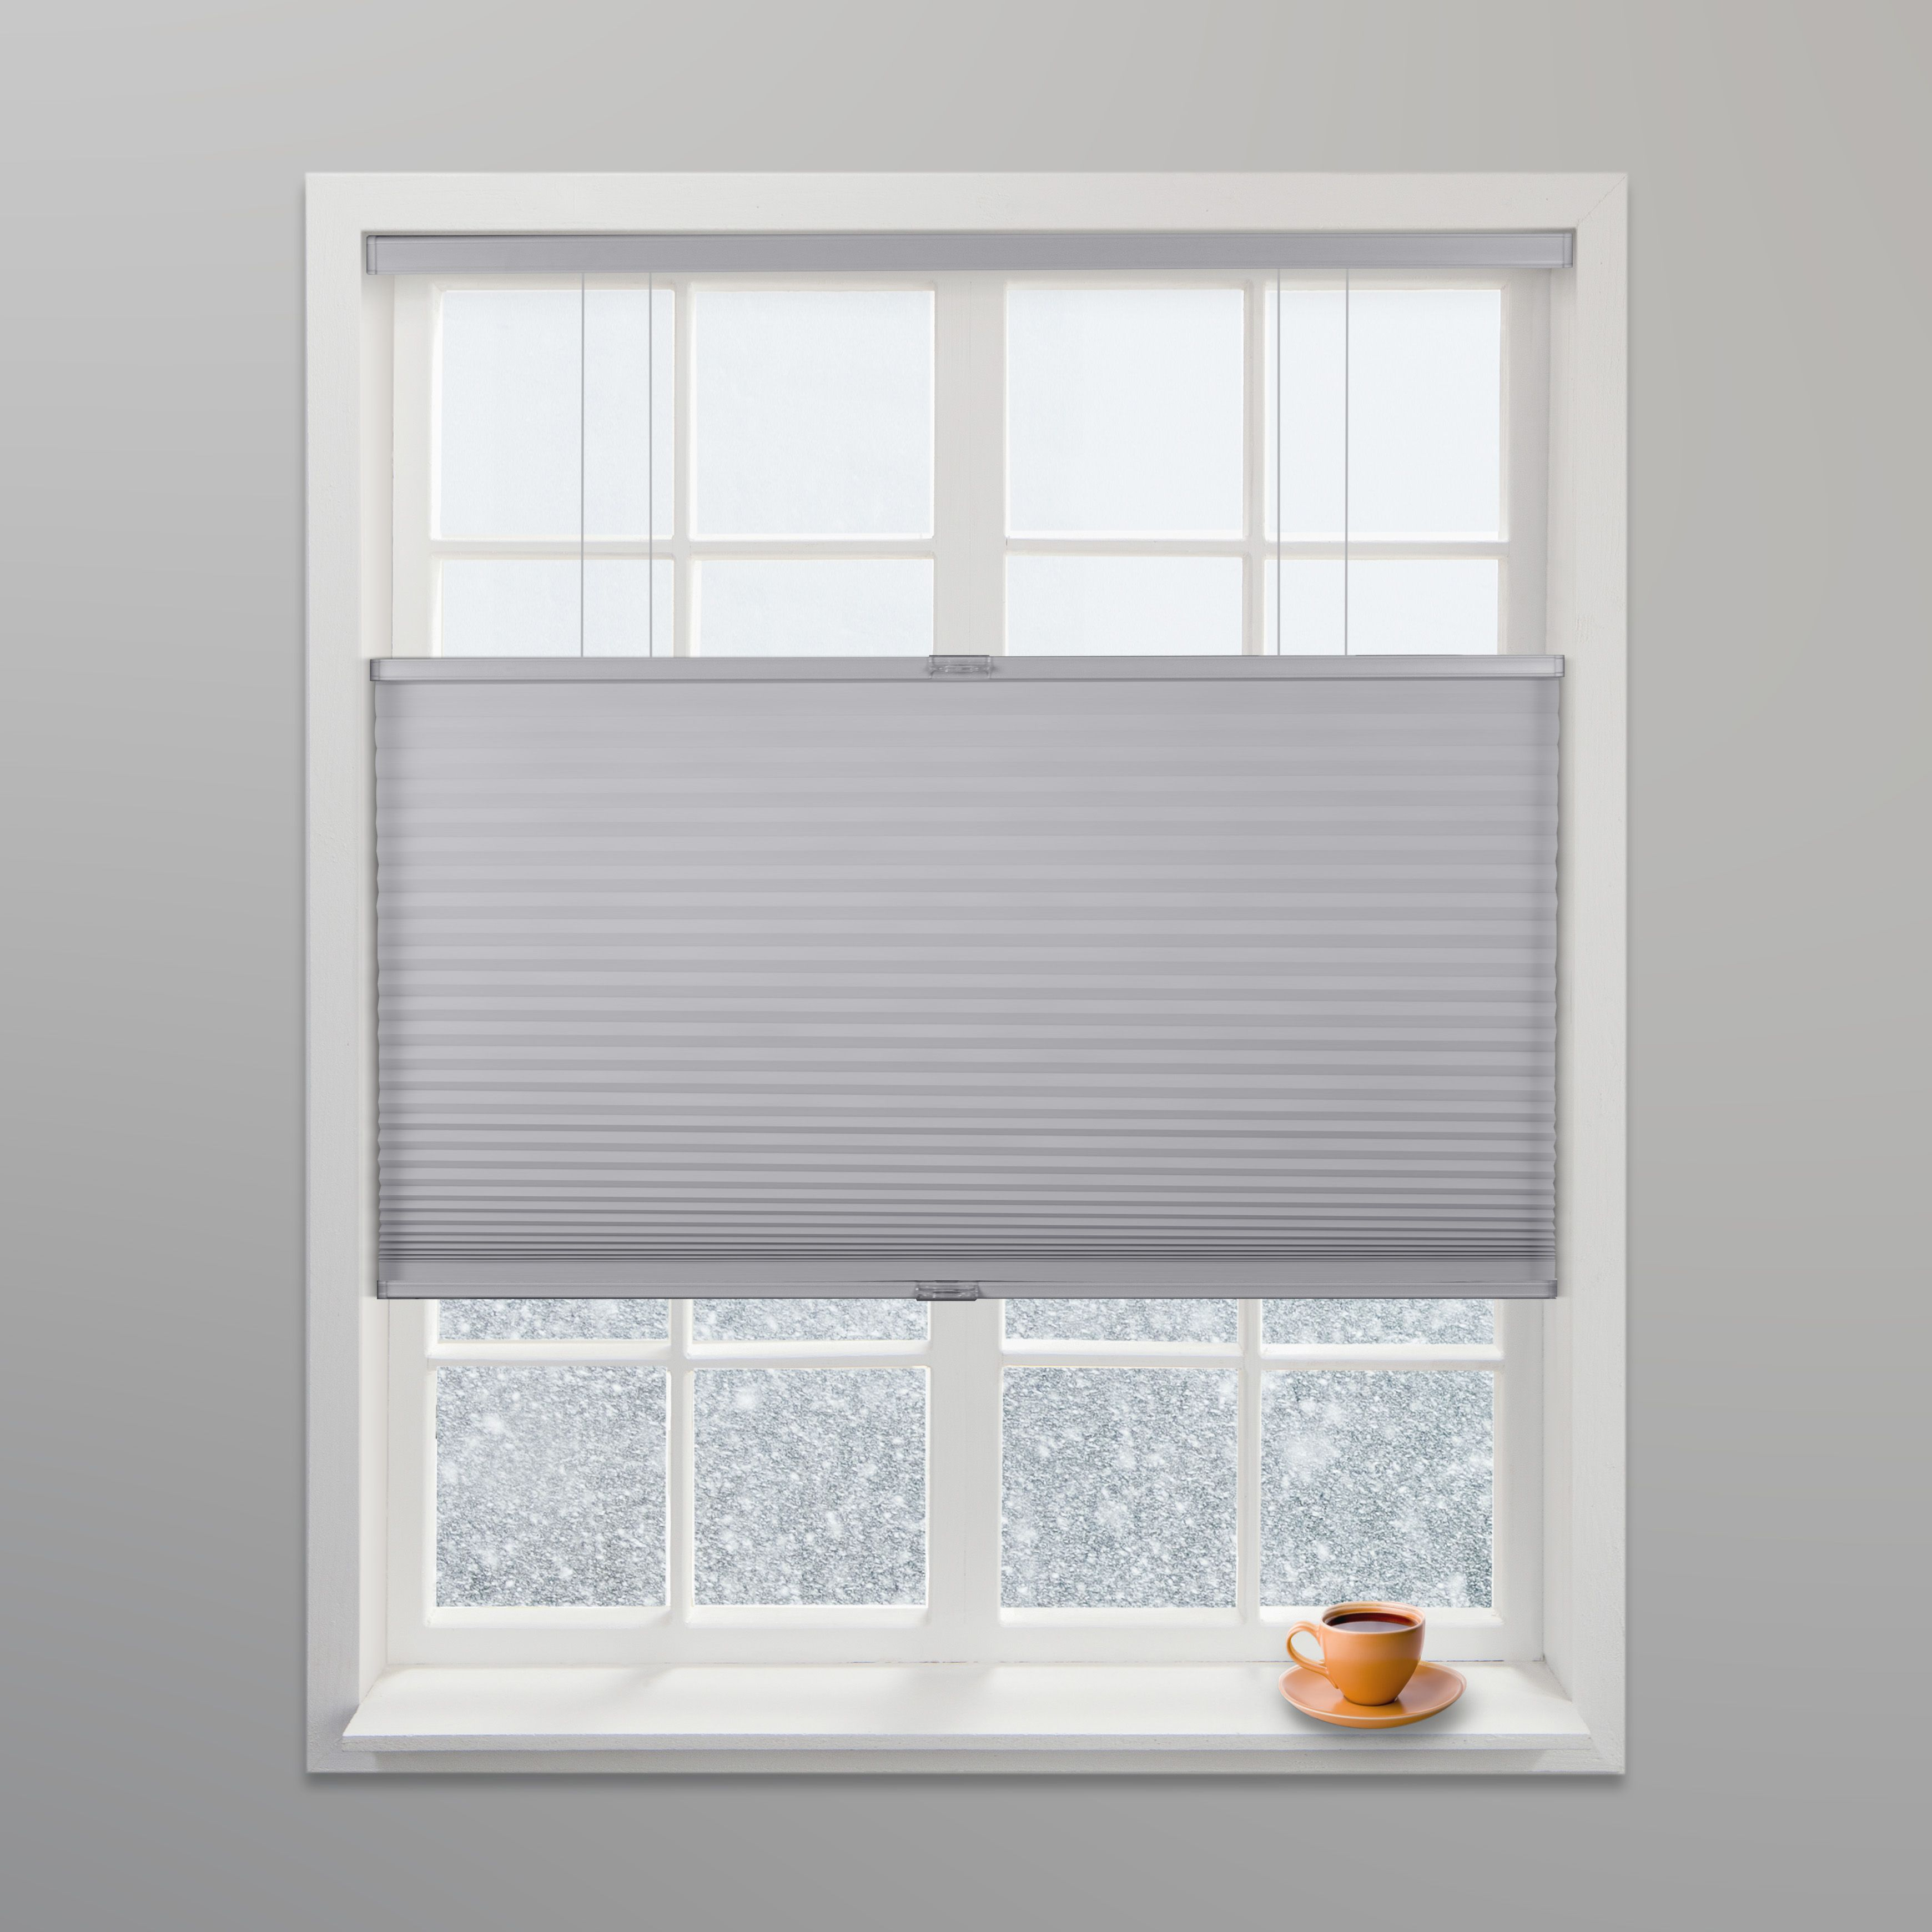 Arlo blinds grey light filtering top down bottom up deluxe